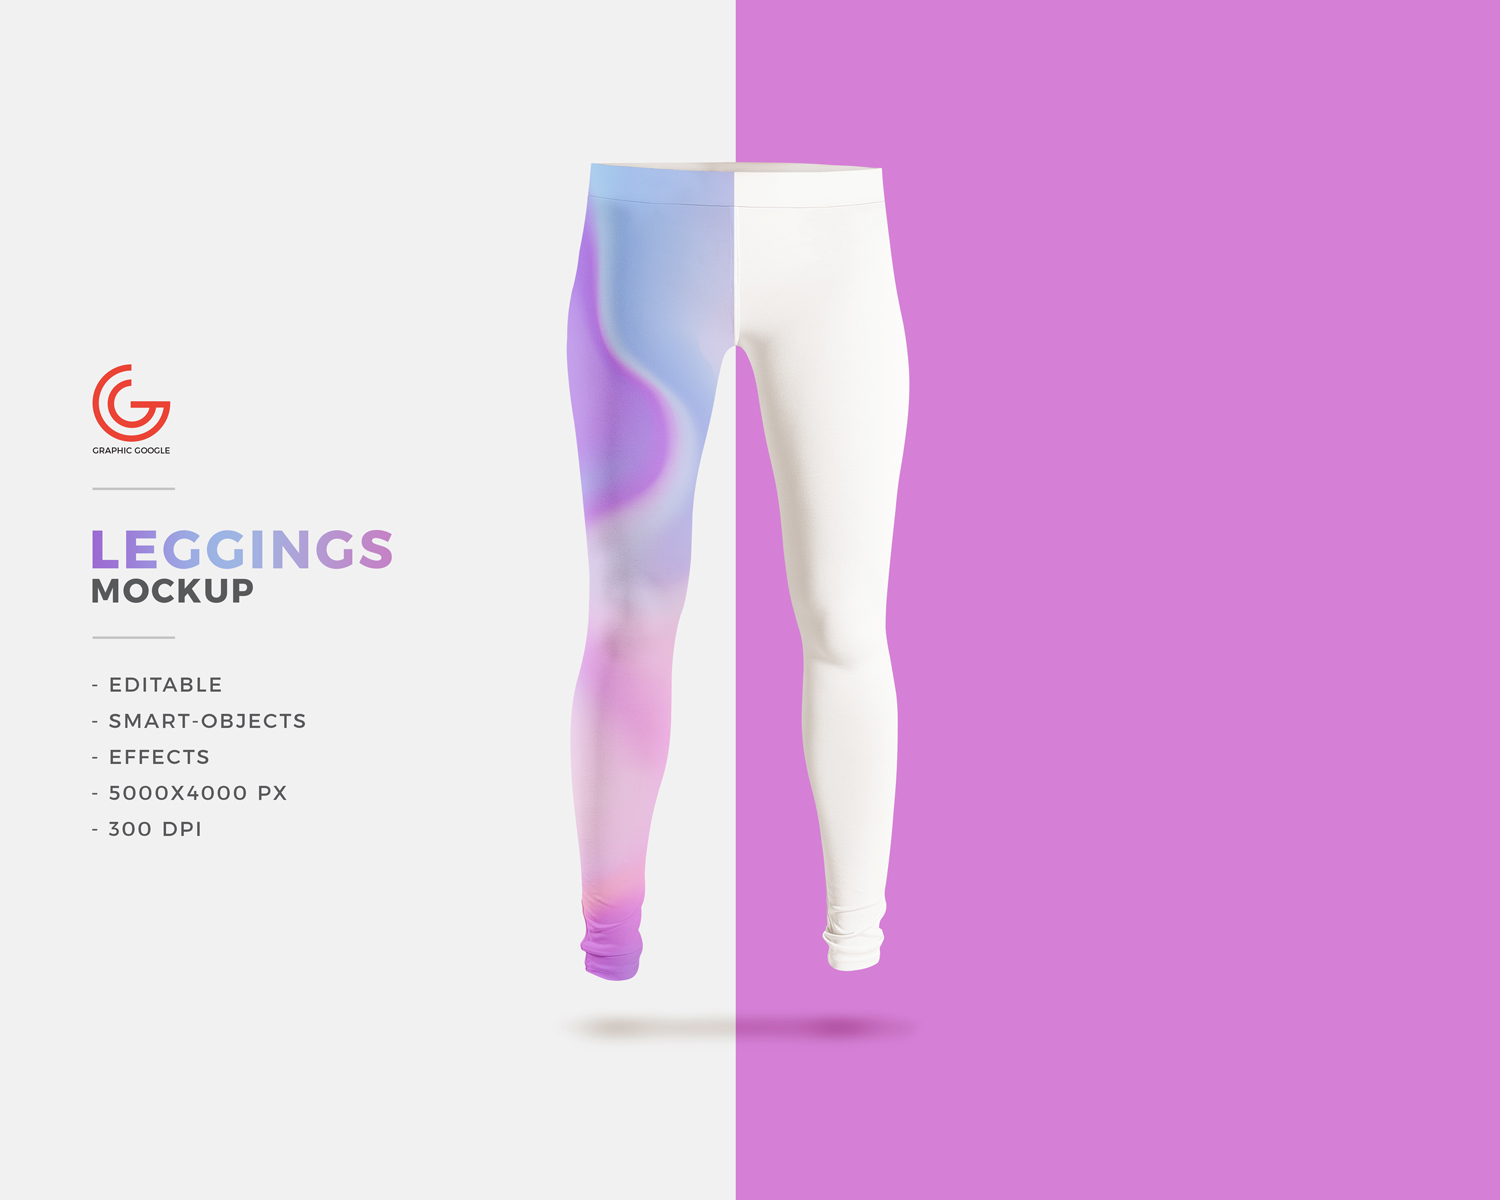 Free-Leggings-Mockup-PSD-2018-1